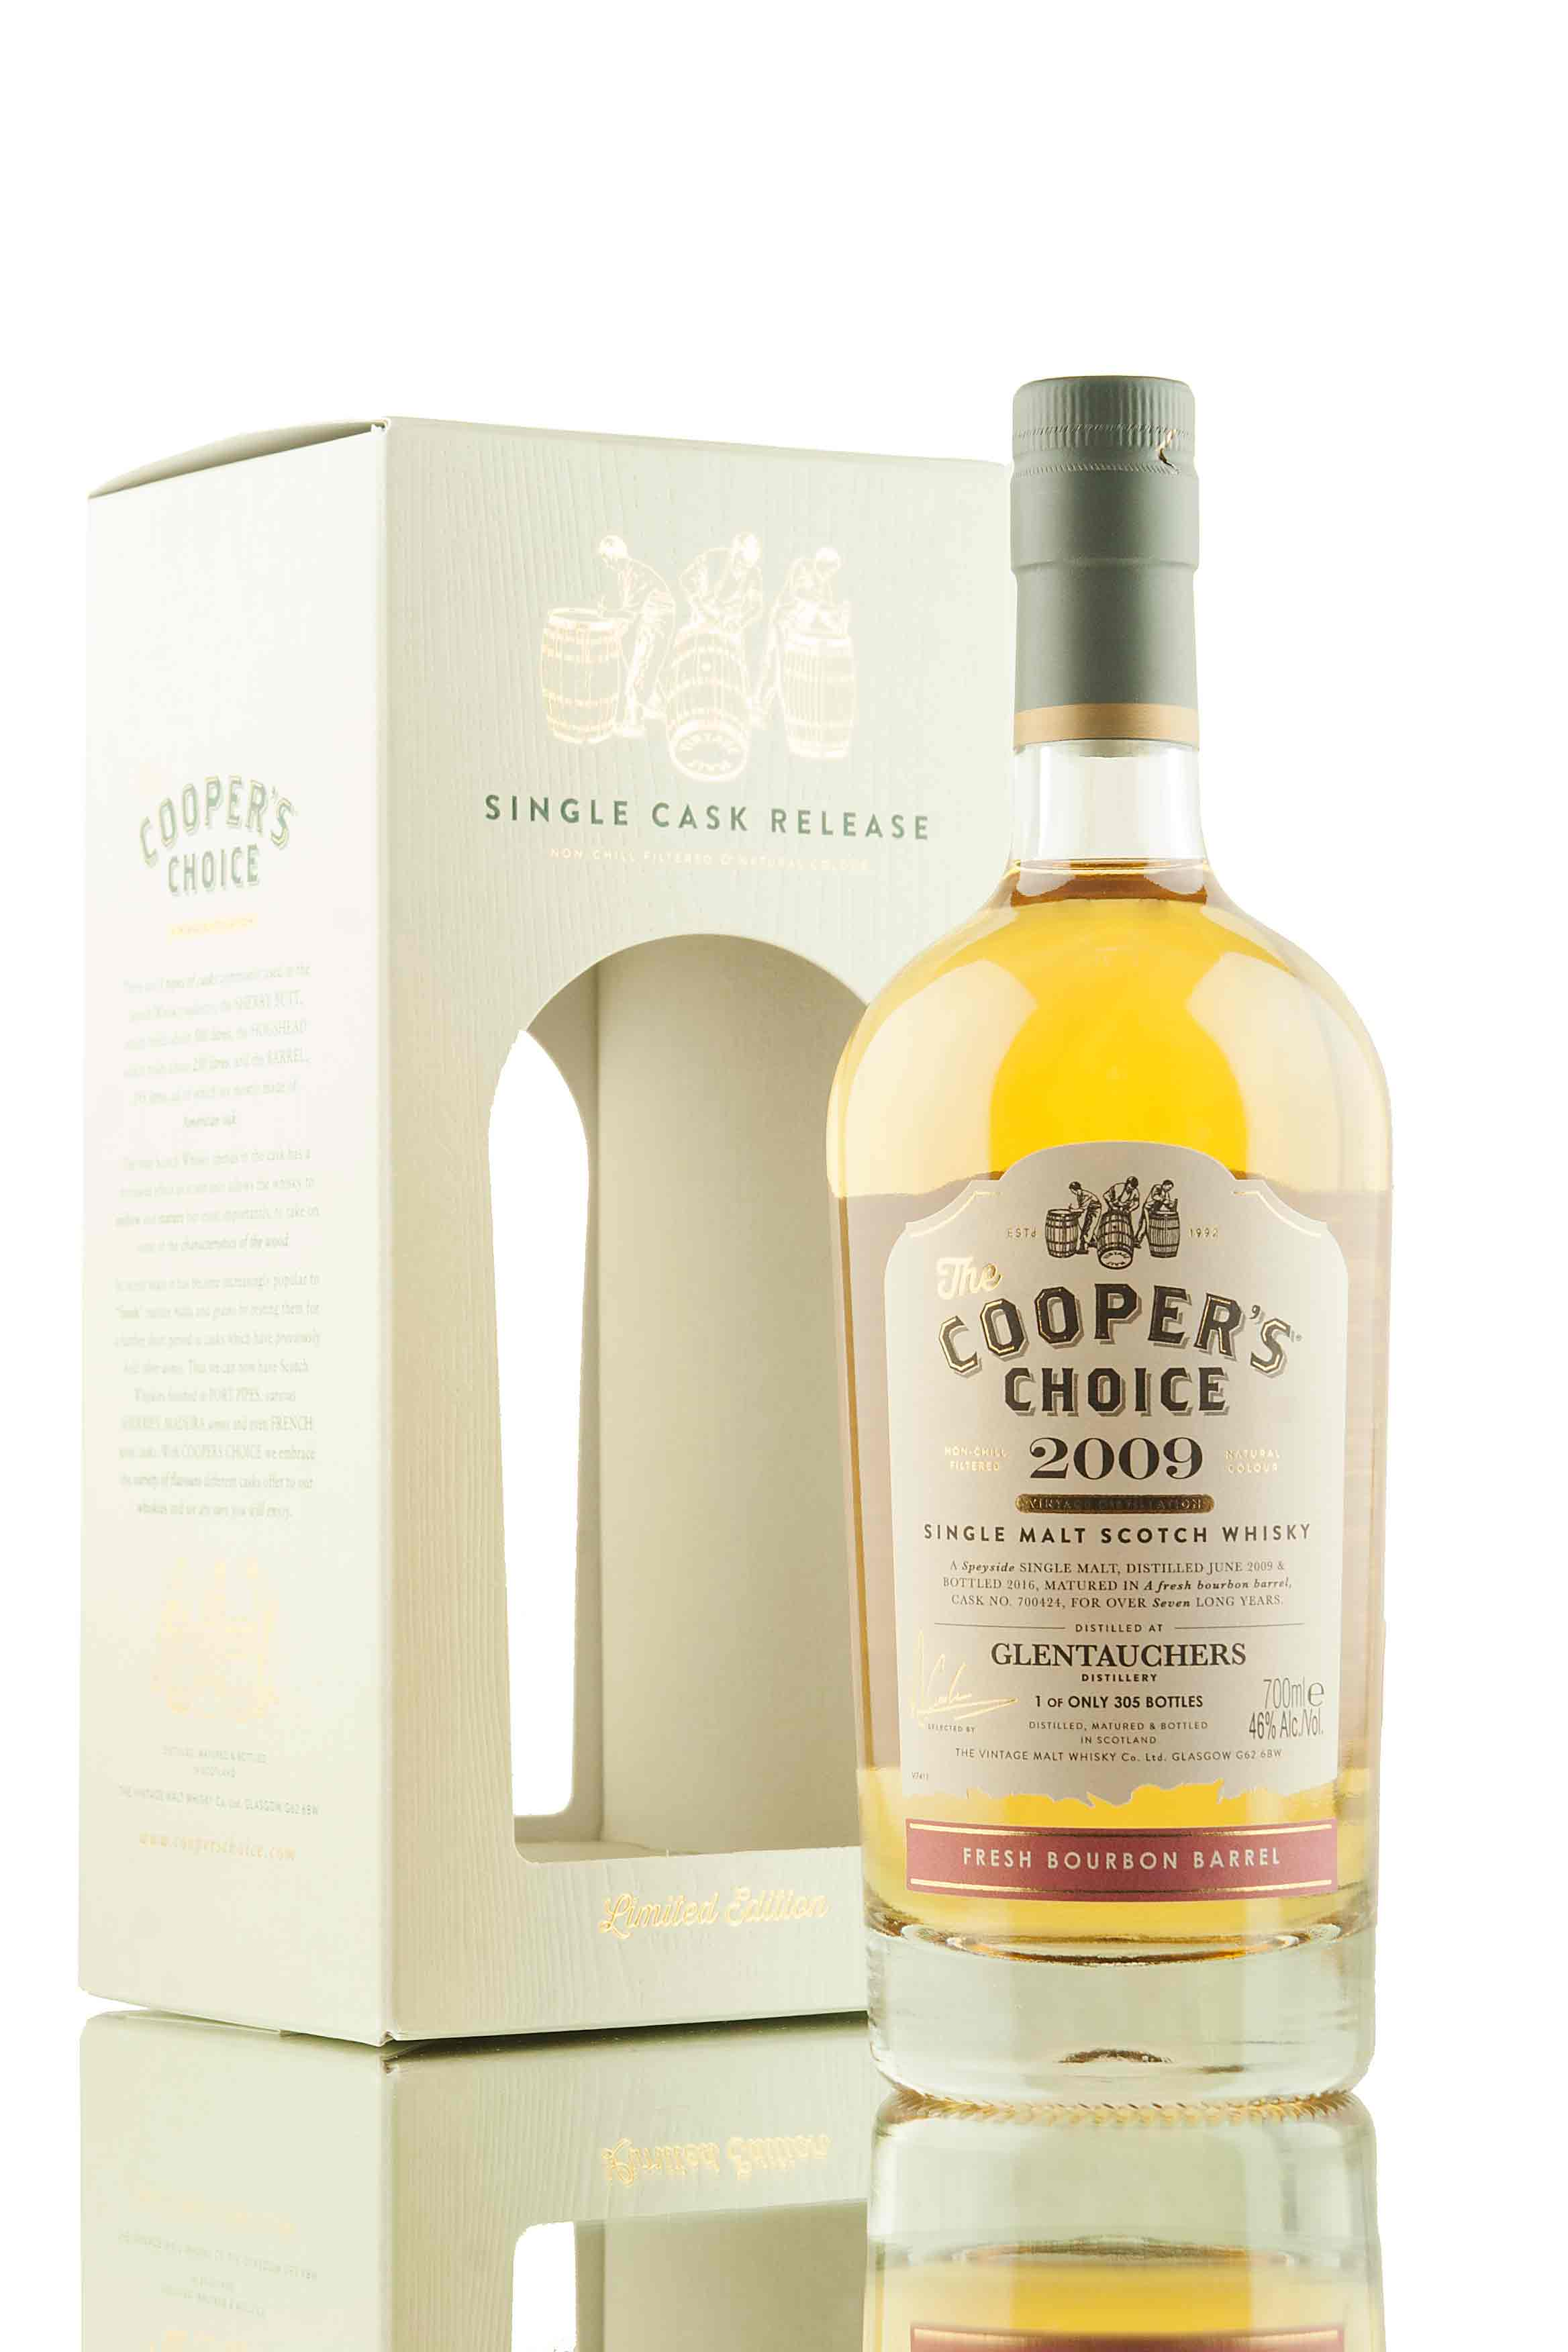 Glentauchers 7 Year Old - 2009 | Cask 700424 | The Cooper's Choice